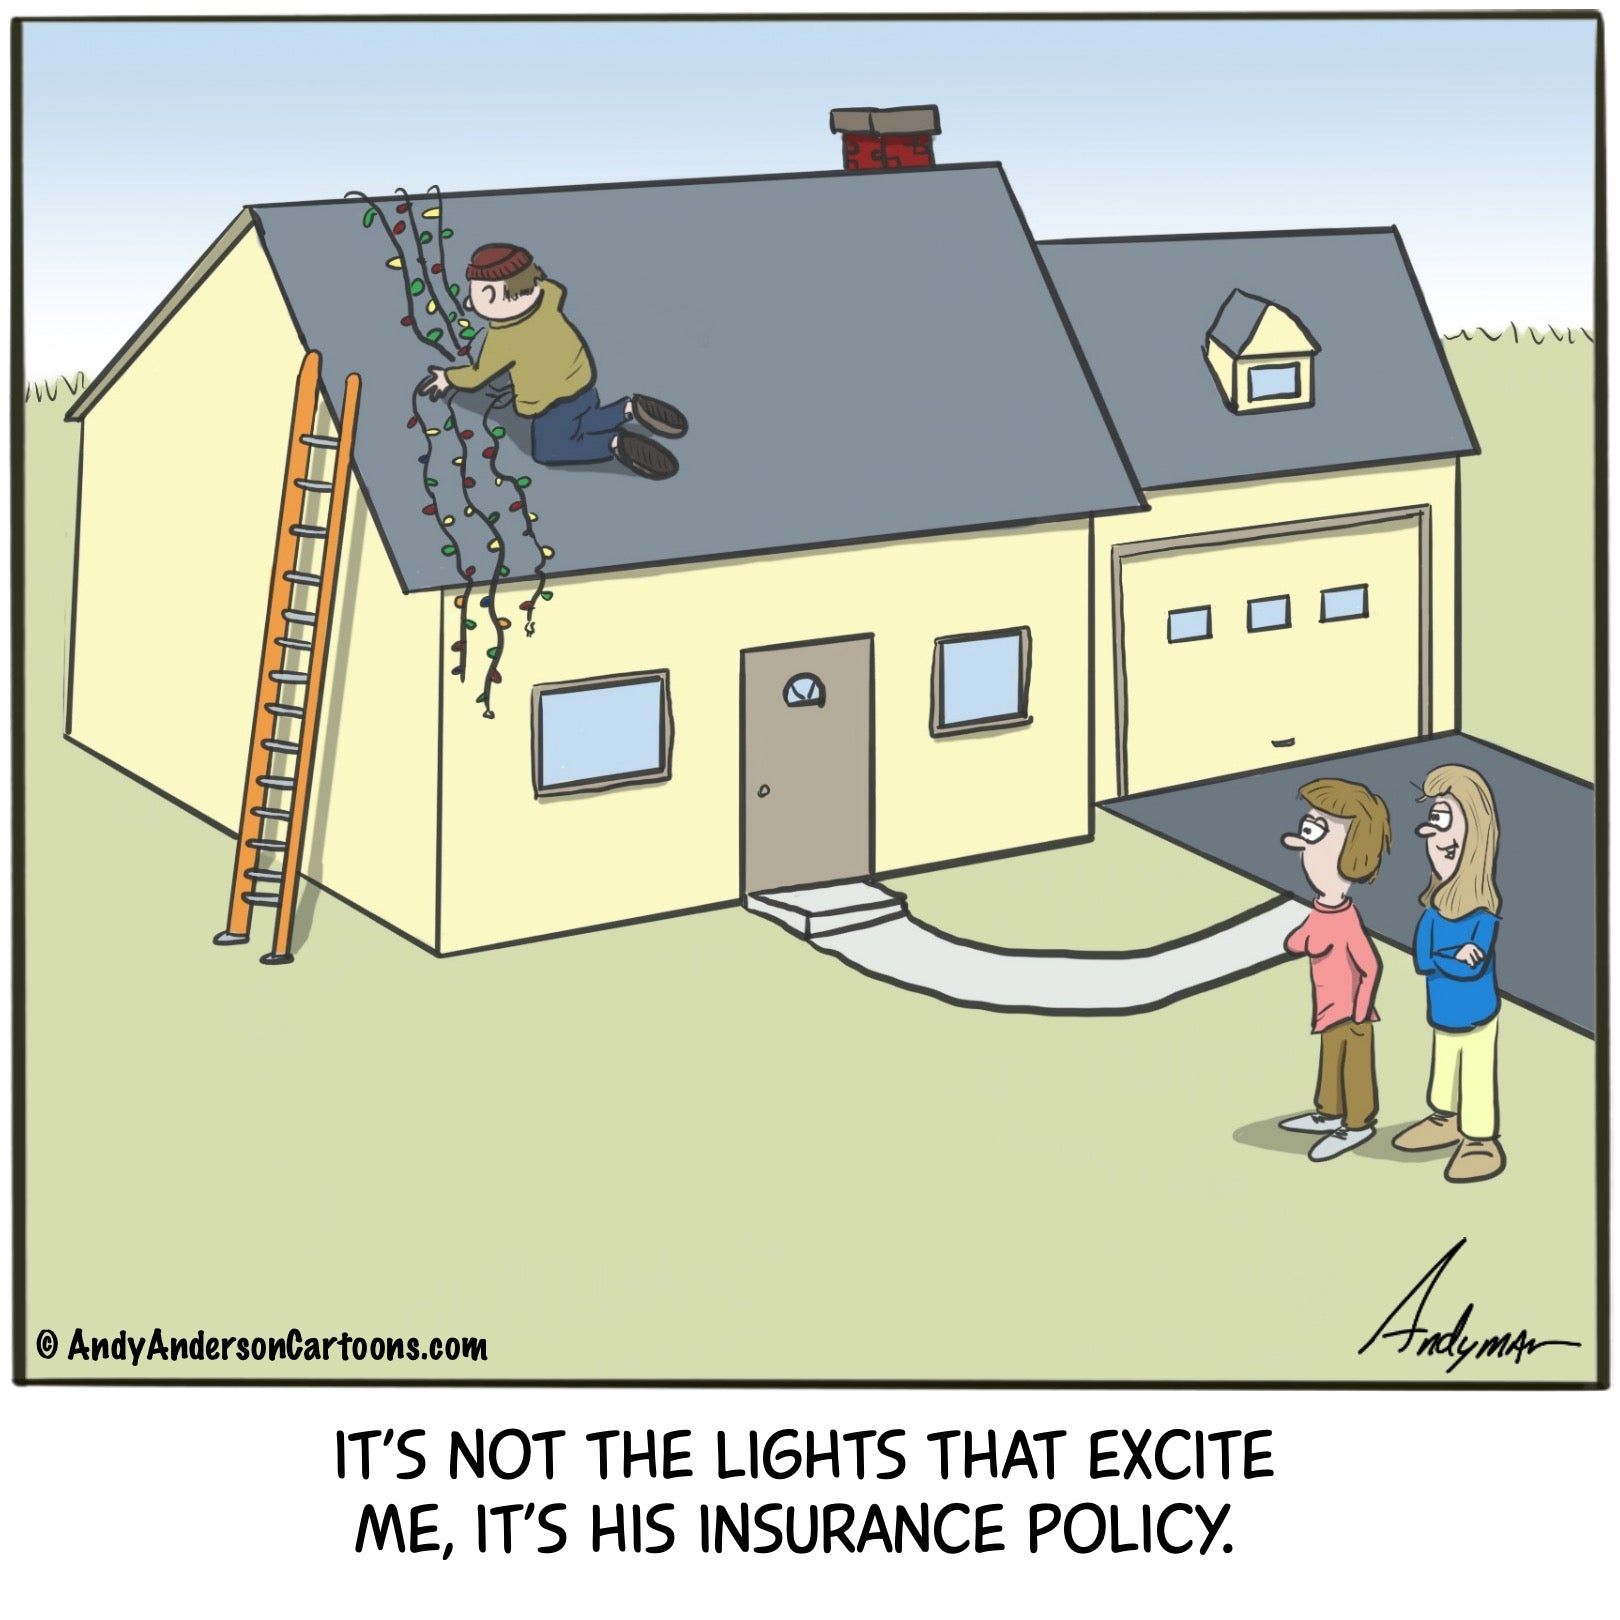 Cartoon about holiday lights and life insurance by Andy Anderson